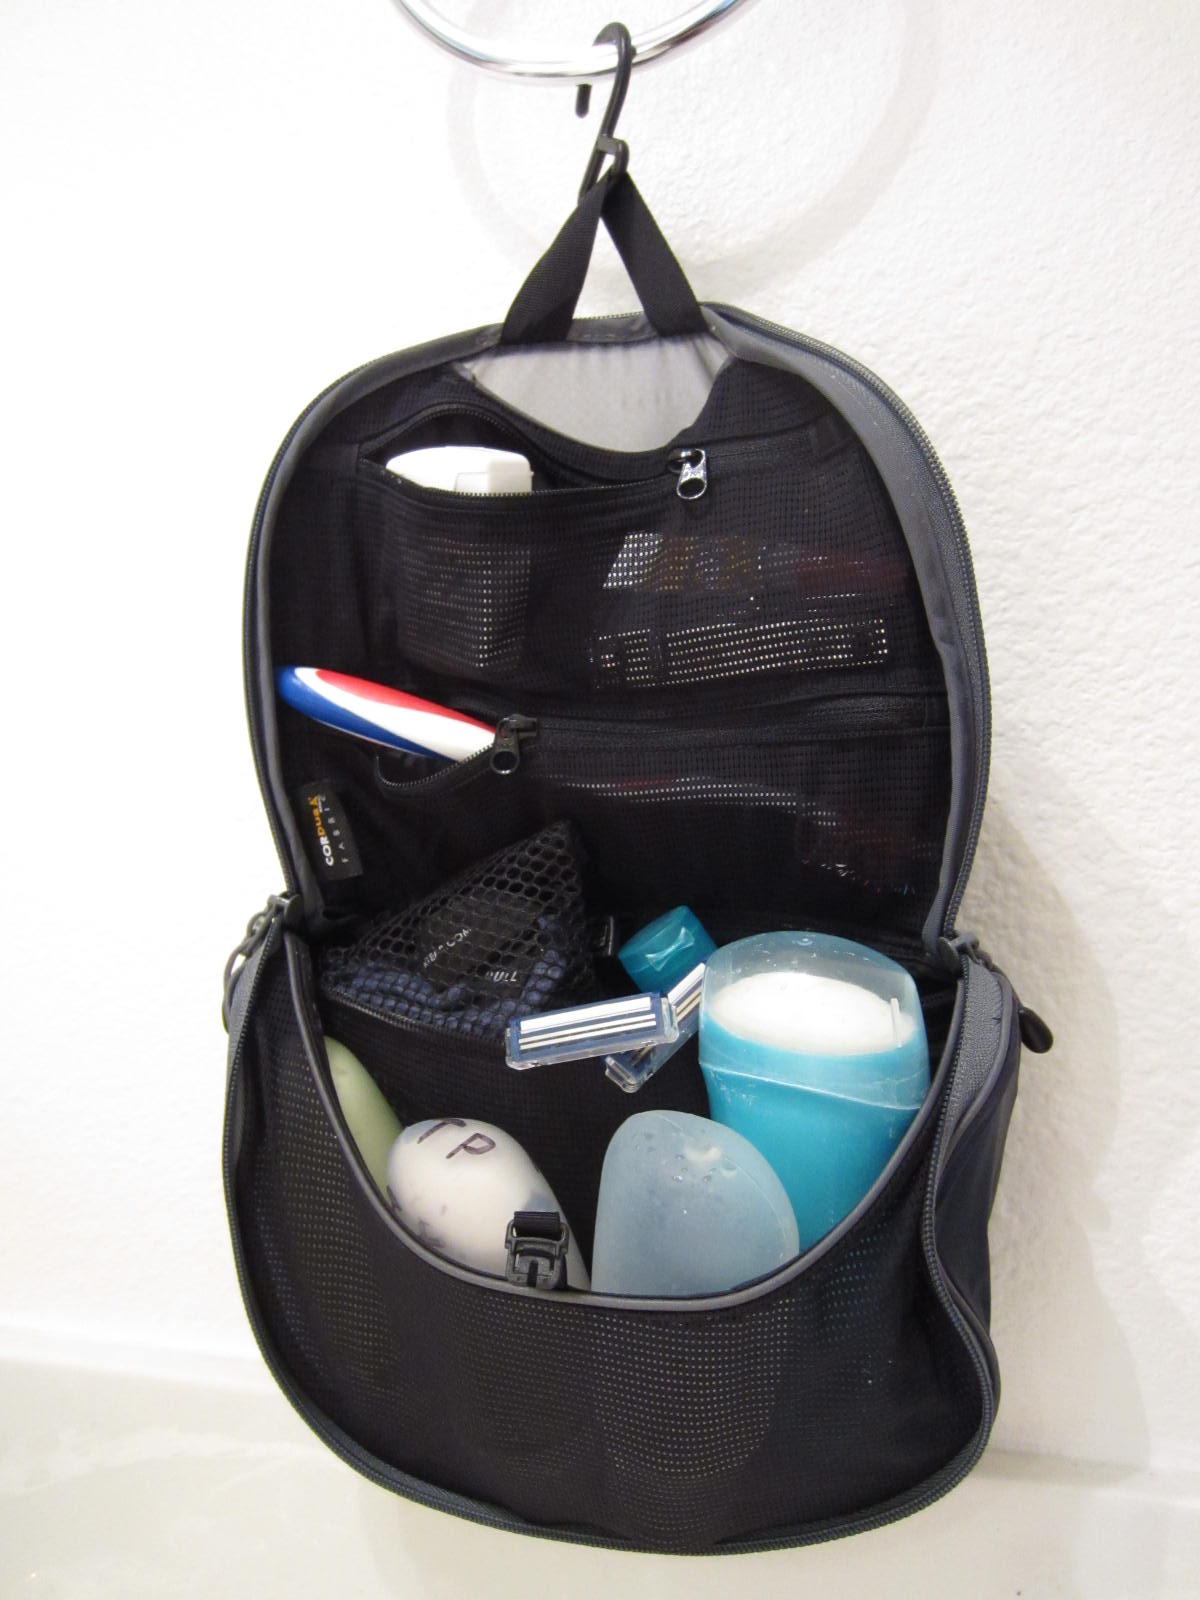 ca27343489d7 Less Than a Hundred  Sea to Summit Hanging Toiletry Bag Review